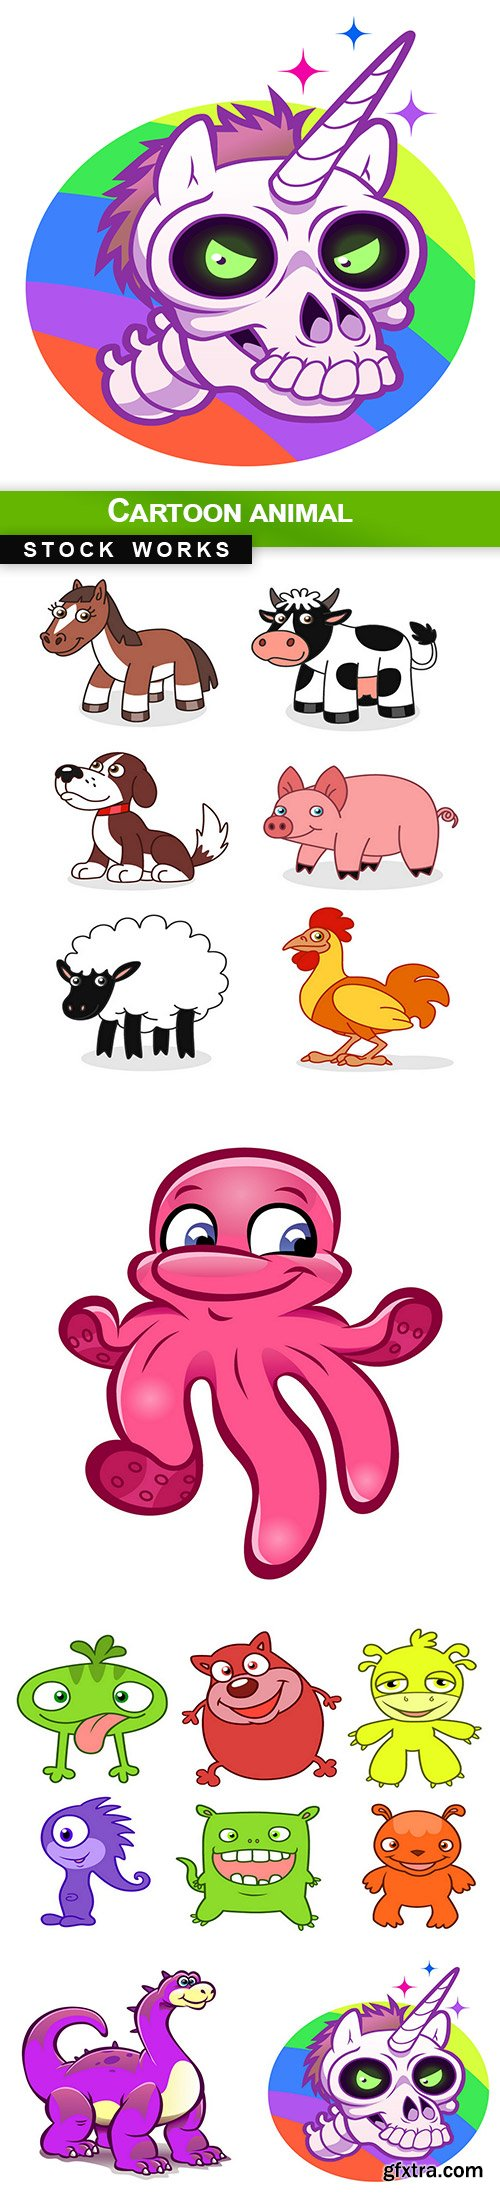 Cartoon animal - 5 EPS